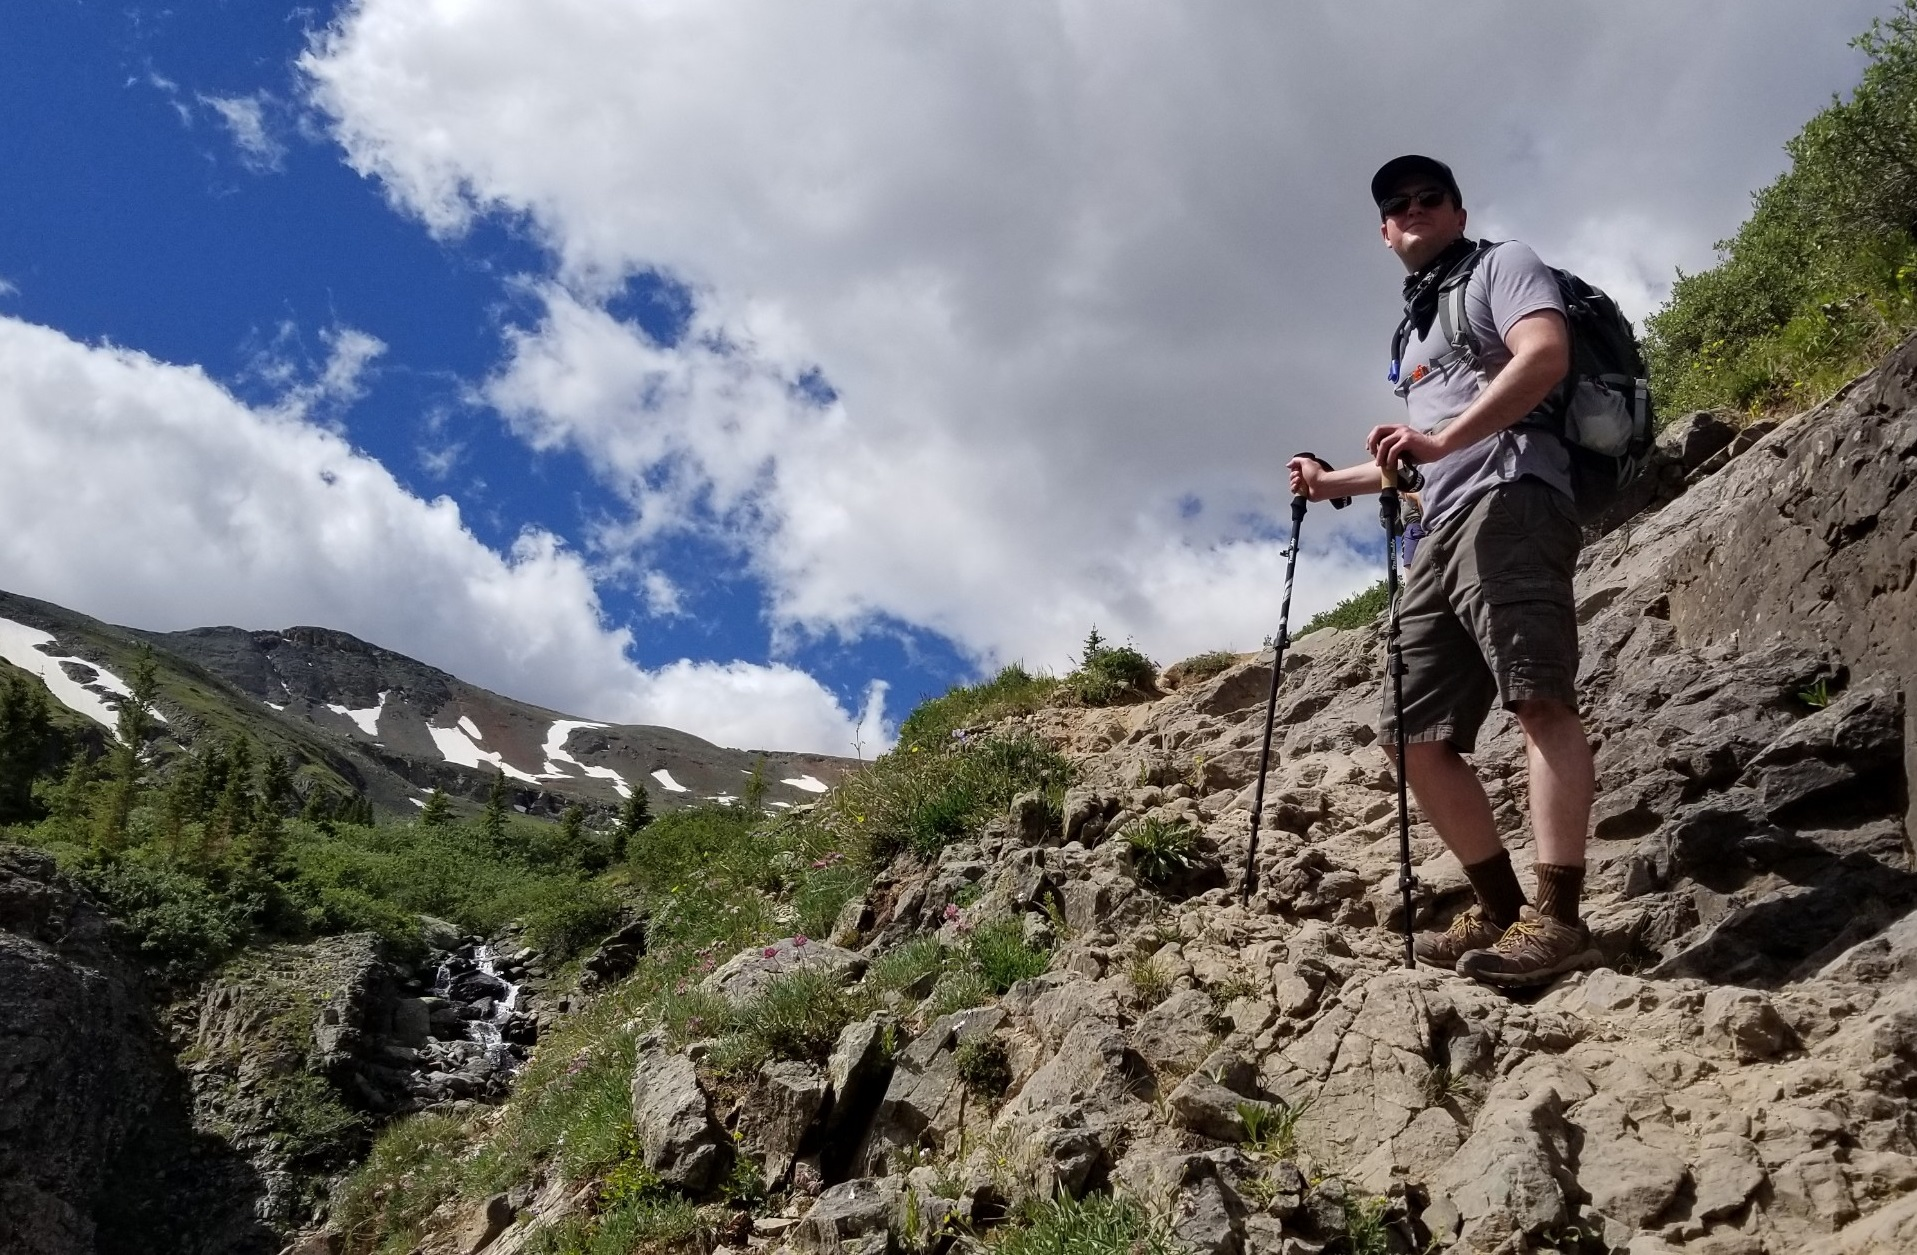 Hiking Ice Lakes Trail in the San Juan mountains near Silverton, Colorado on a beautiful summer day.